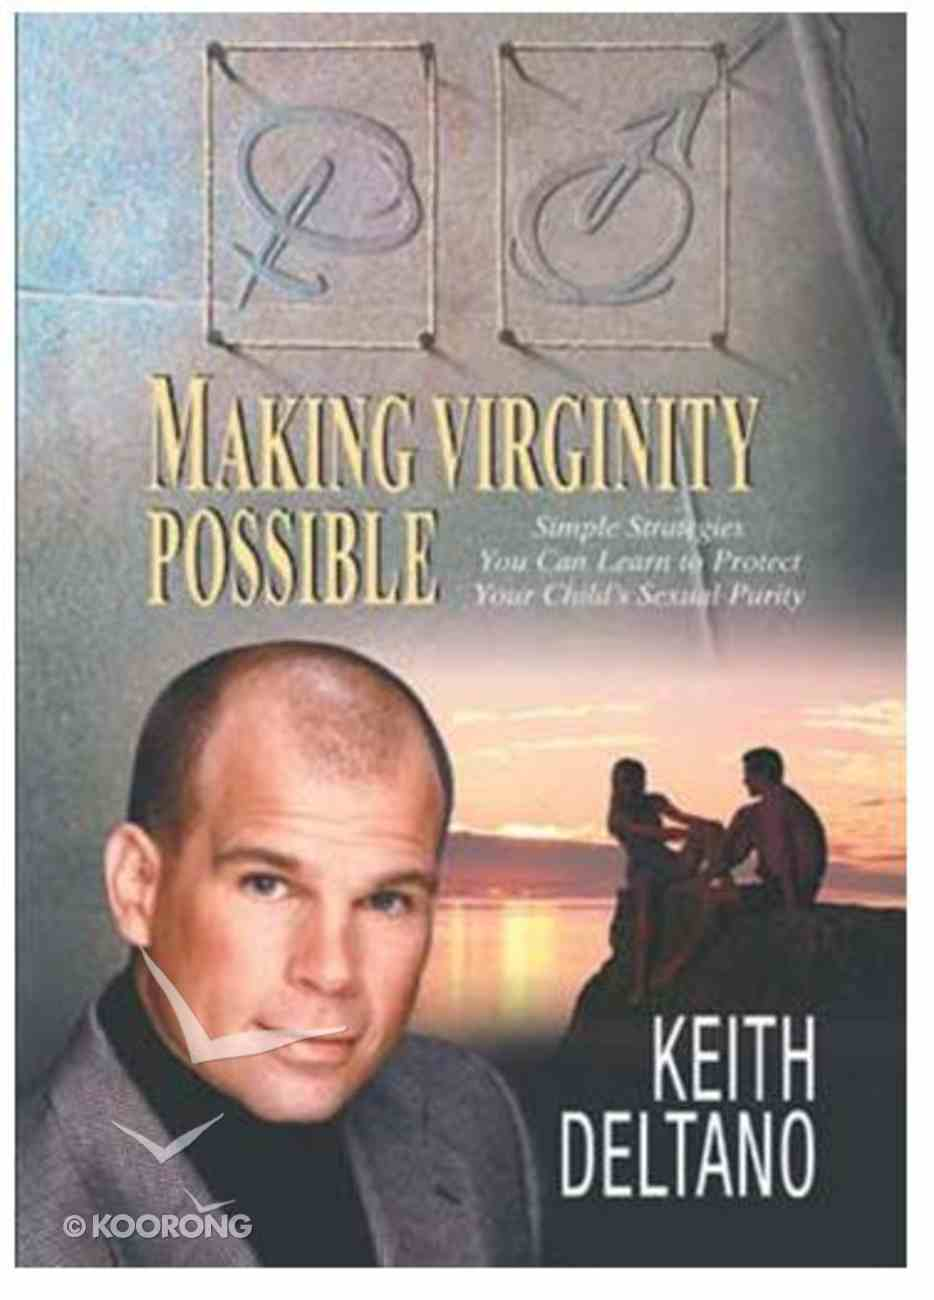 Making Virginity Possible DVD